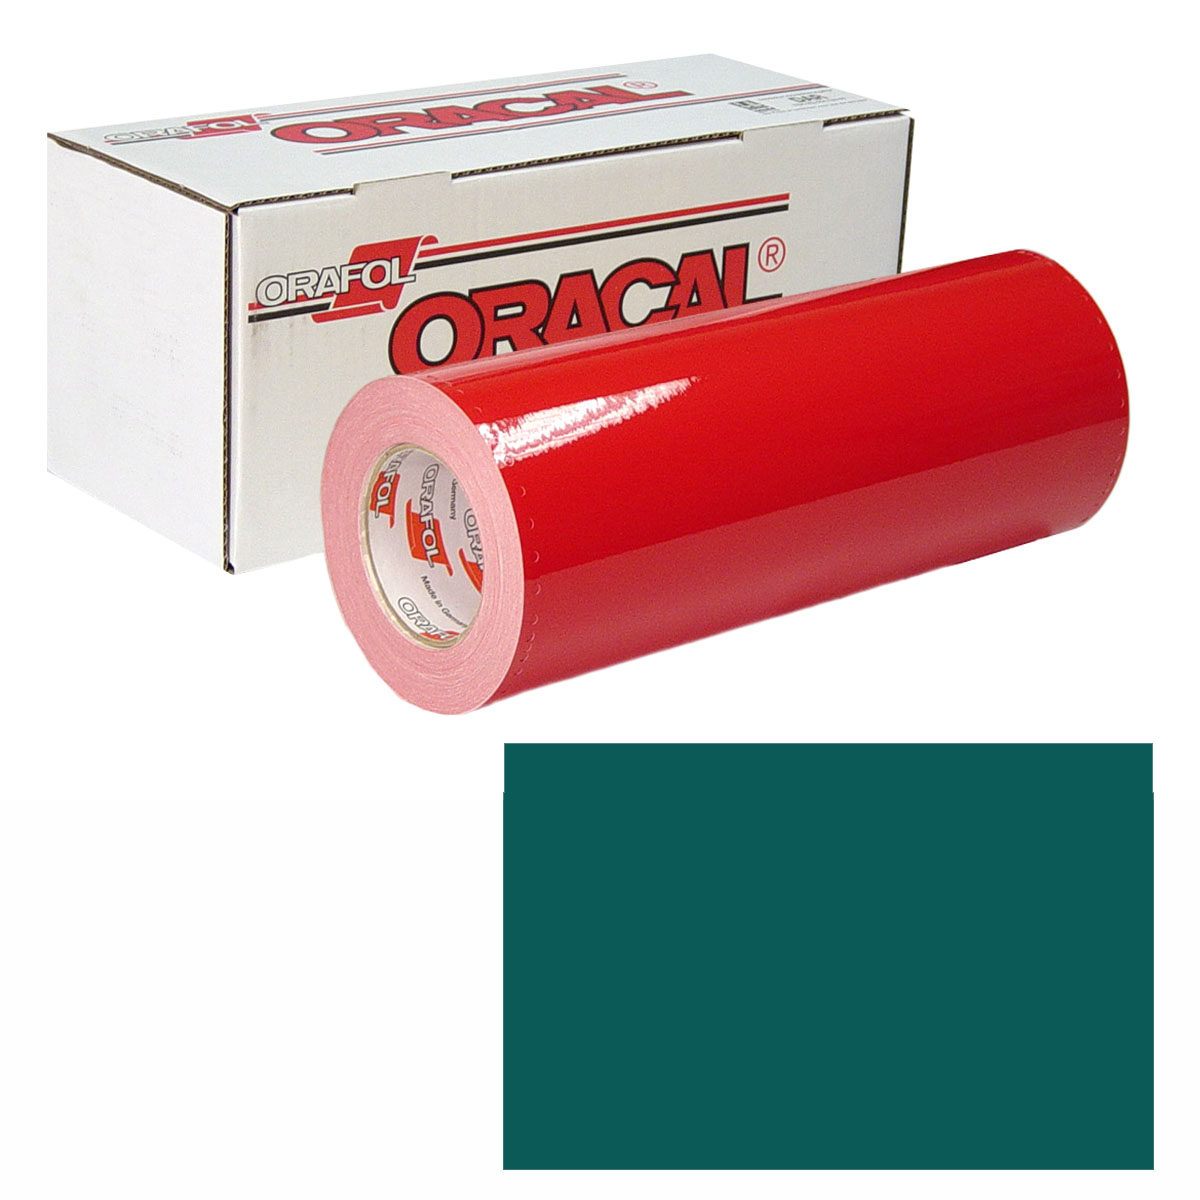 ORACAL 951M Unp 24In X 10Yd 675 Sea Green Met